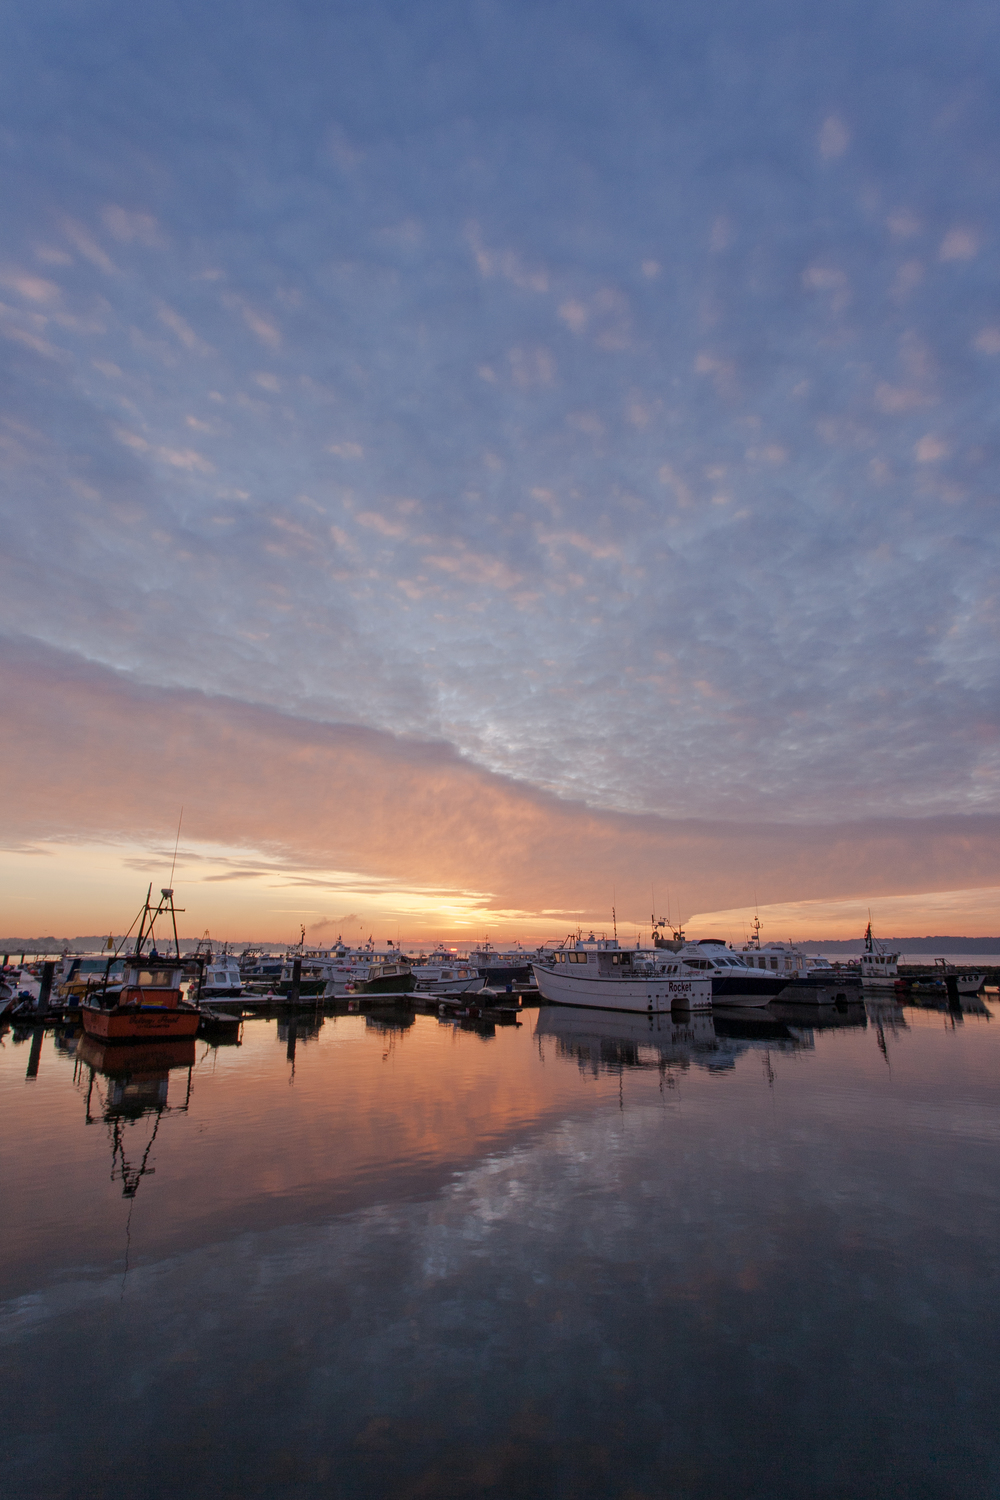 Sunrise looking towards Sandbanks from Poole Quay – Pictures of Poole by Rick McEvoy